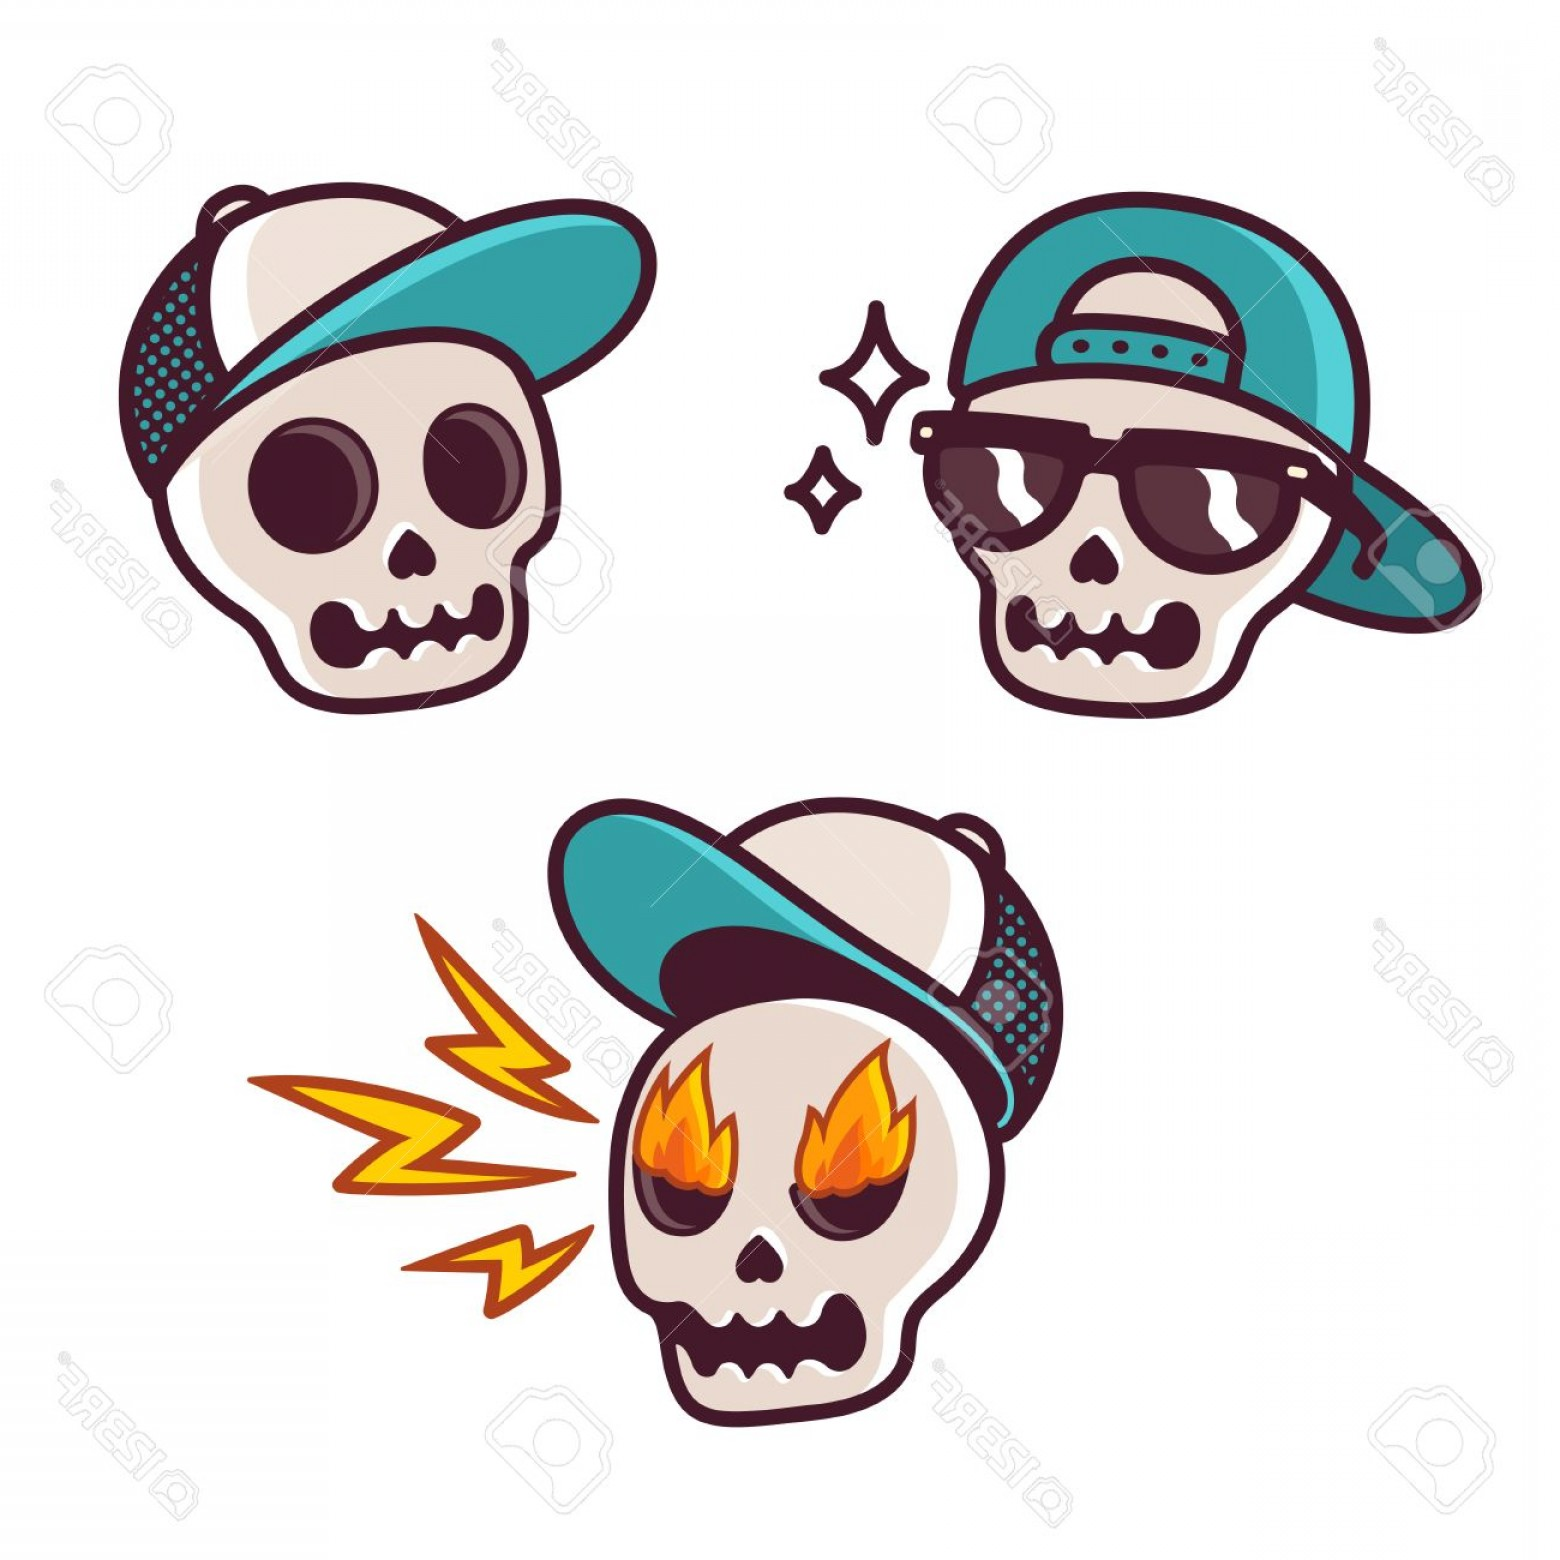 Cool Skull Vector: Photostock Vector Set Of Funny Cartoon Skull Character In Baseball Cap Cool Skull With Sunglasses Angry With Flame In